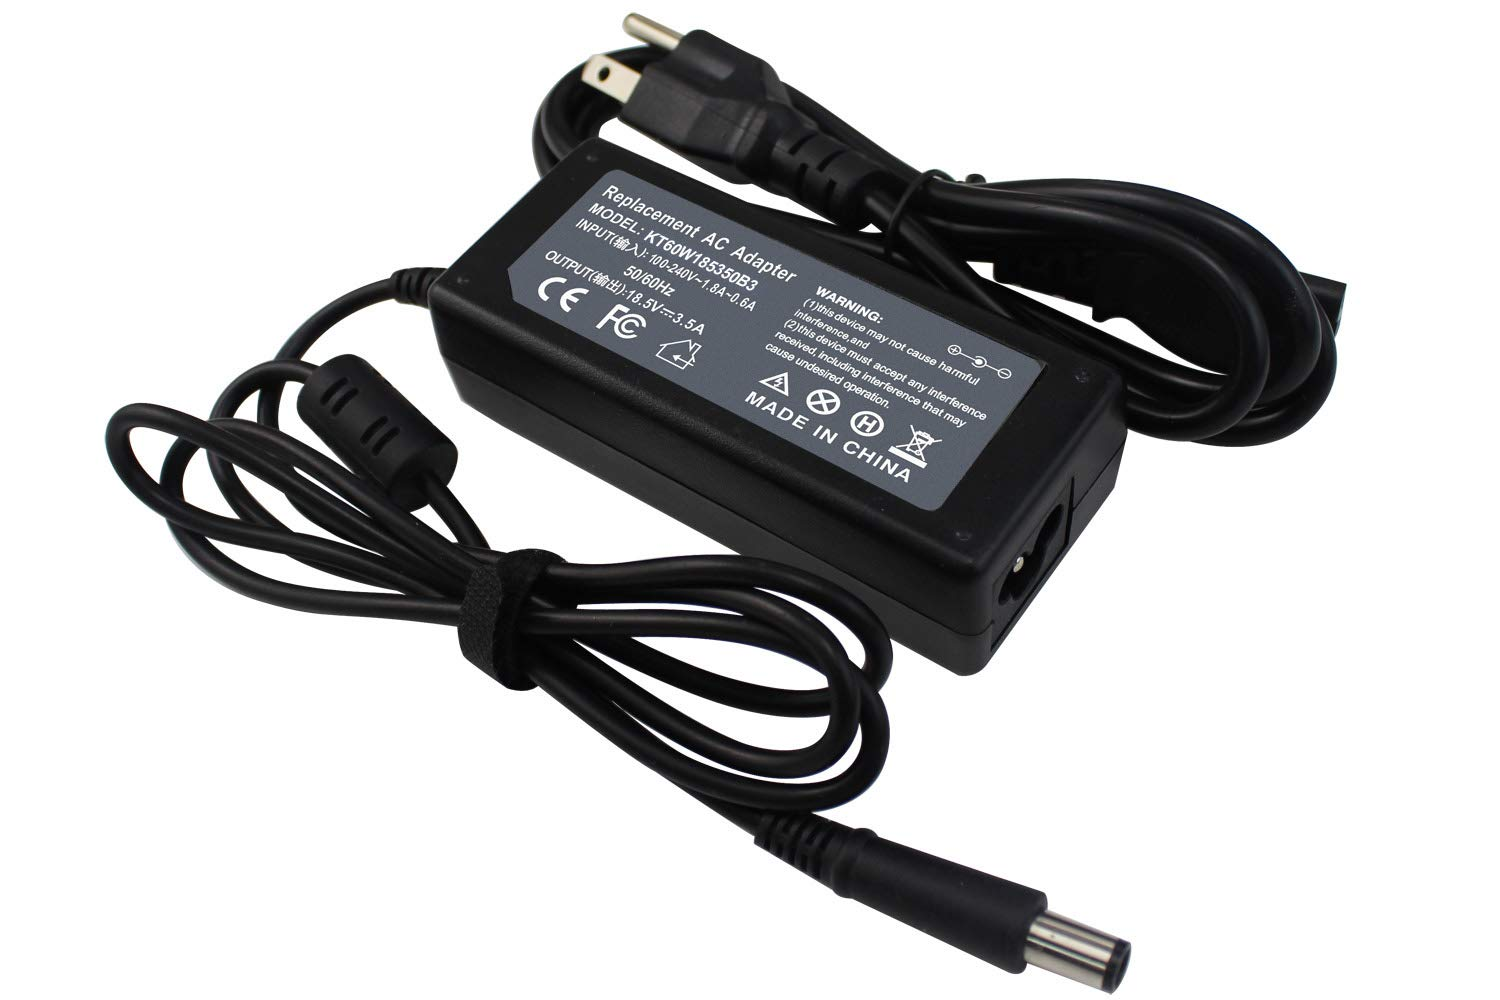 LNOCCIY 18.5V 3.5A 65W AC Adapter Laptop Charger for HP Pavilion G4 G6 G7 G60 G61 G71 G72 M6 DM4 DV4 DV5 DV6 DV7; EliteBook 8440p 2540p 2560p 2570p ...